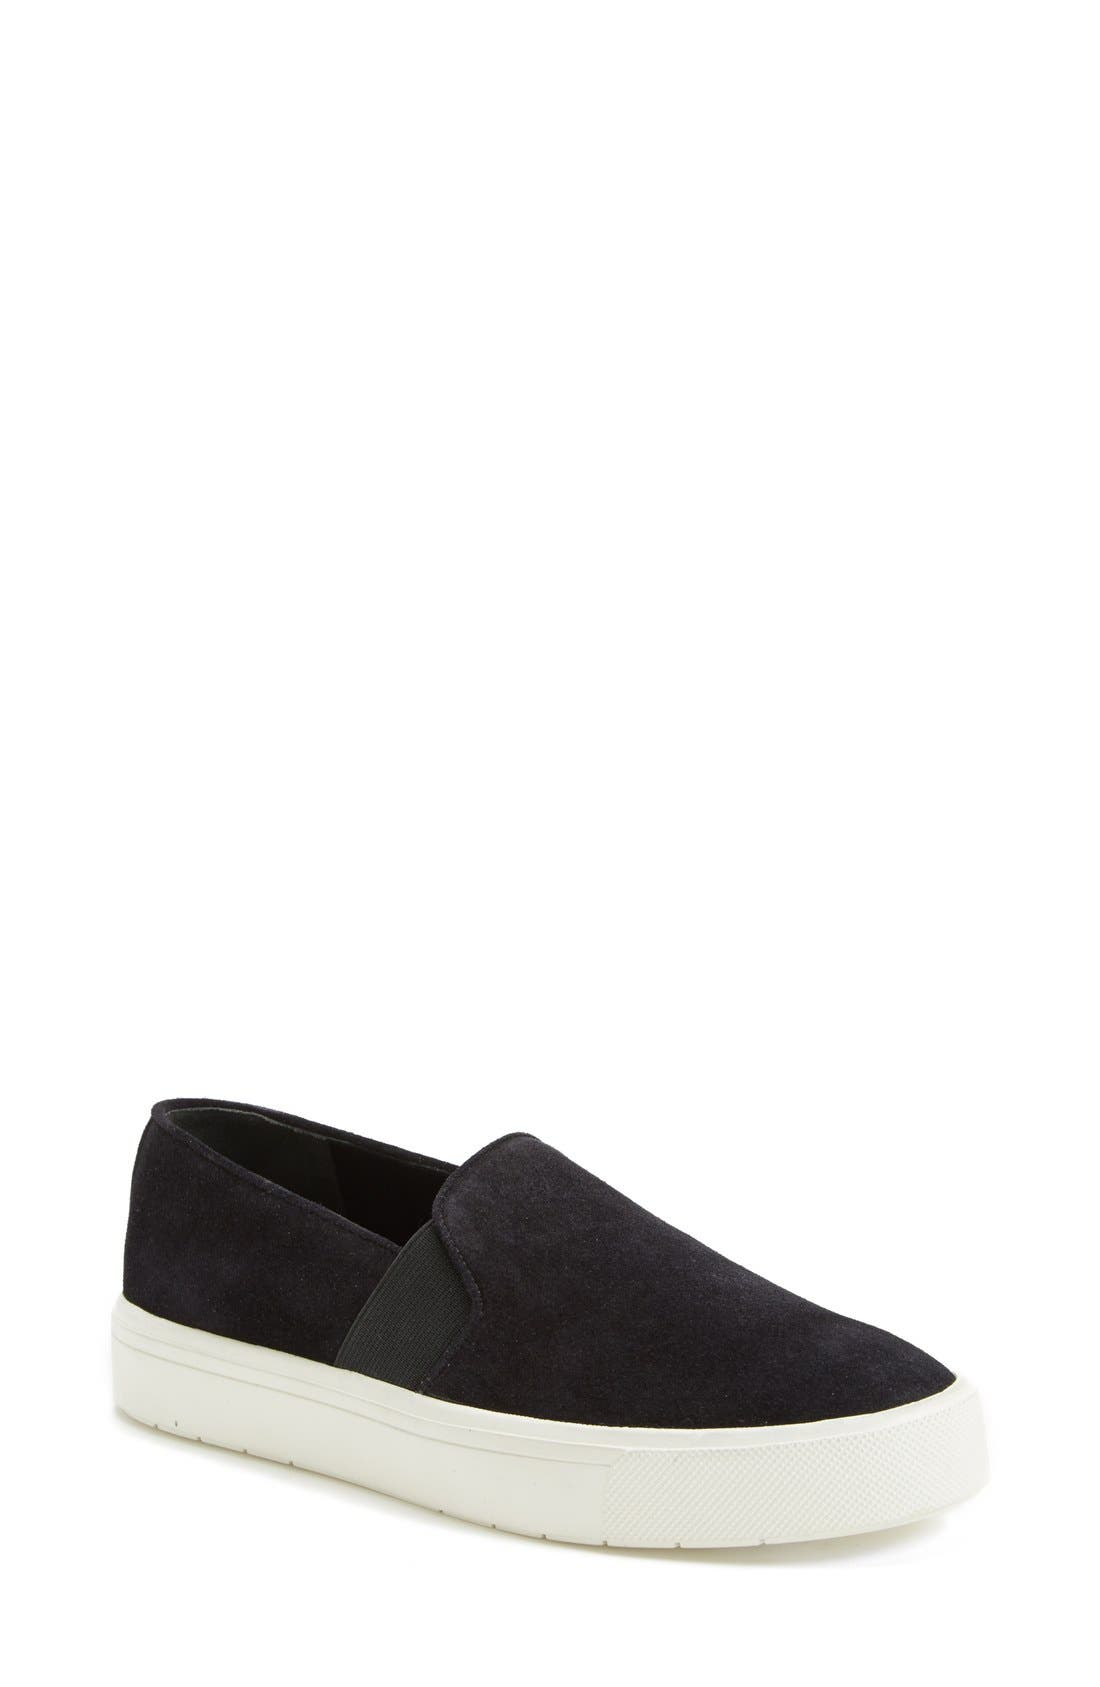 Main Image - Vince 'Berlin 6' Slip-On Suede Sneaker (Women)